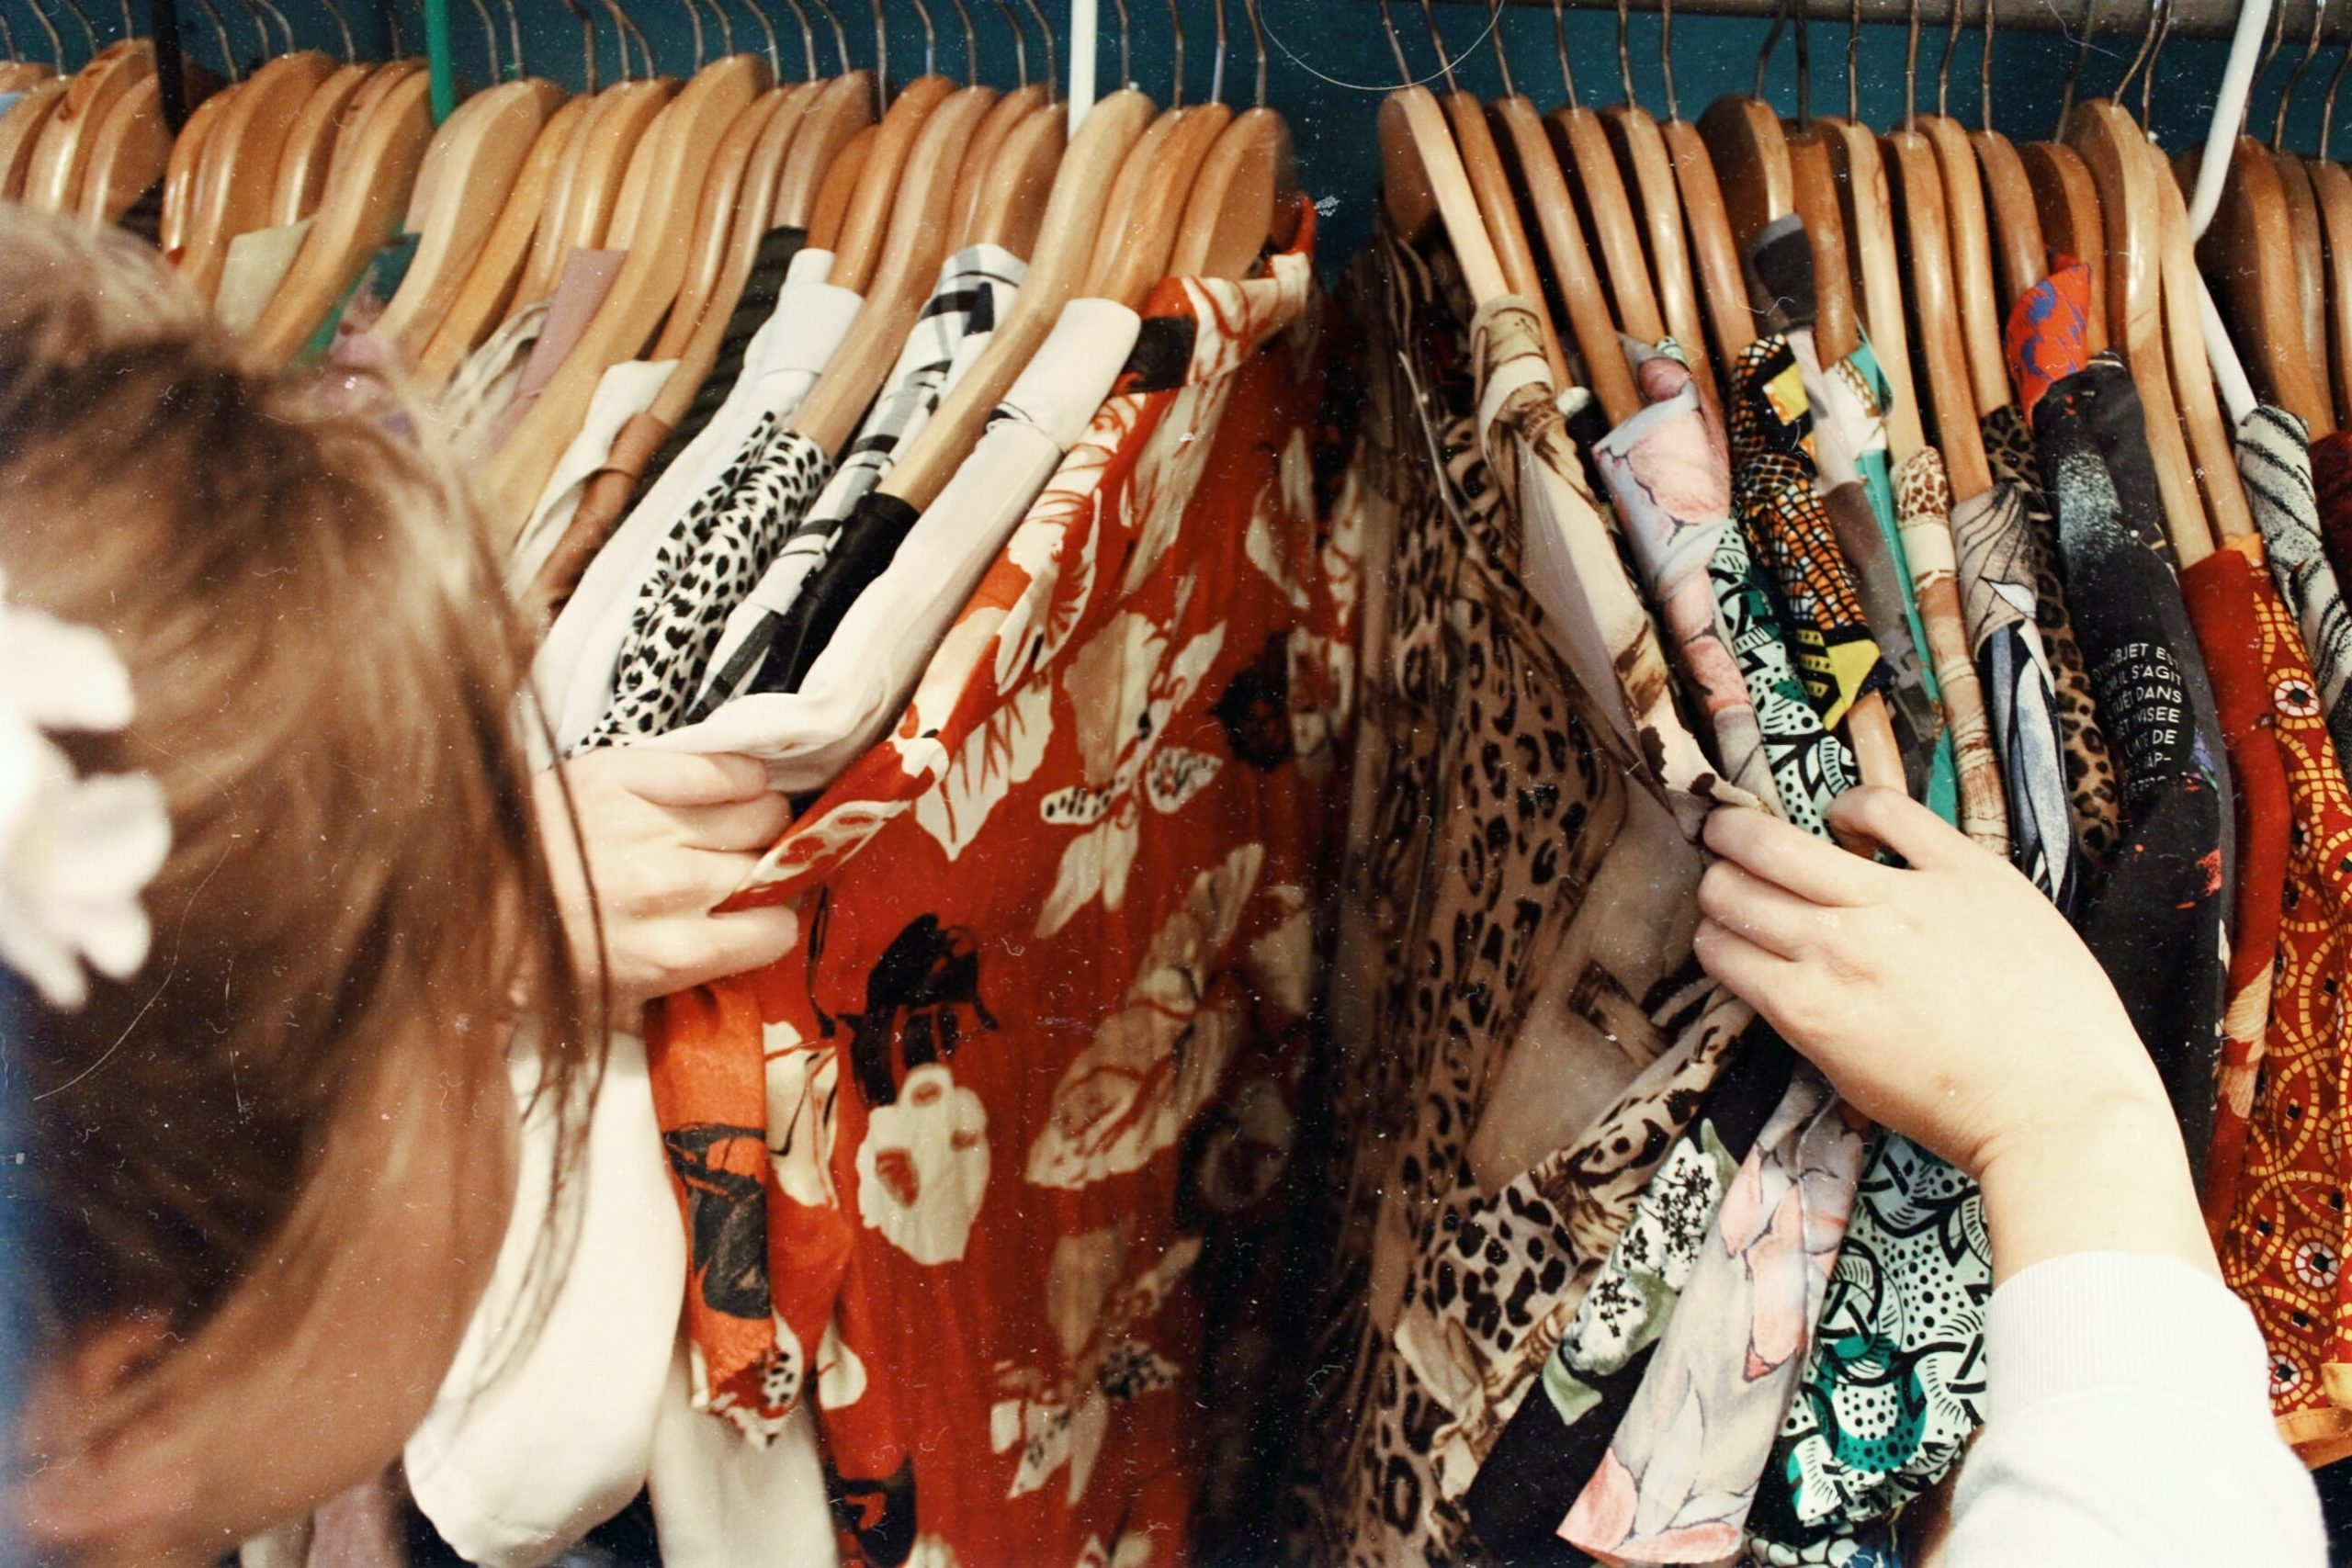 girl-shopping-in-racks-of-clothes